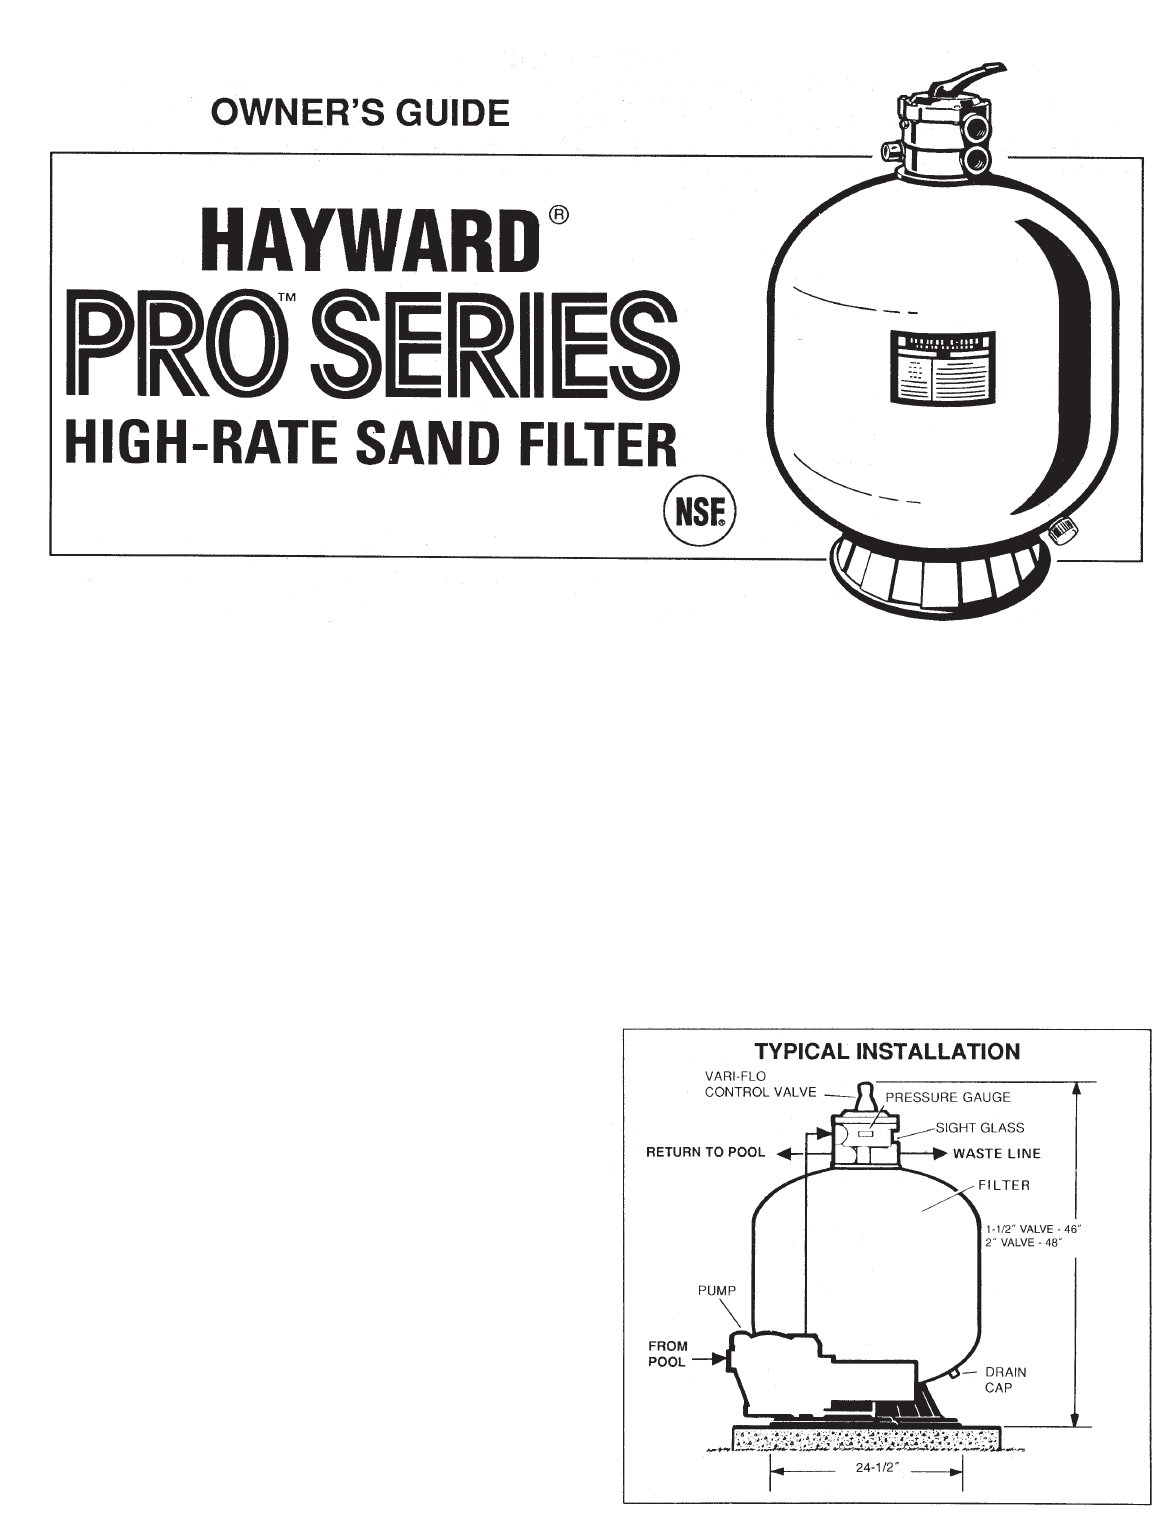 Your Hayward Pro Series high-rate sand filter is a high